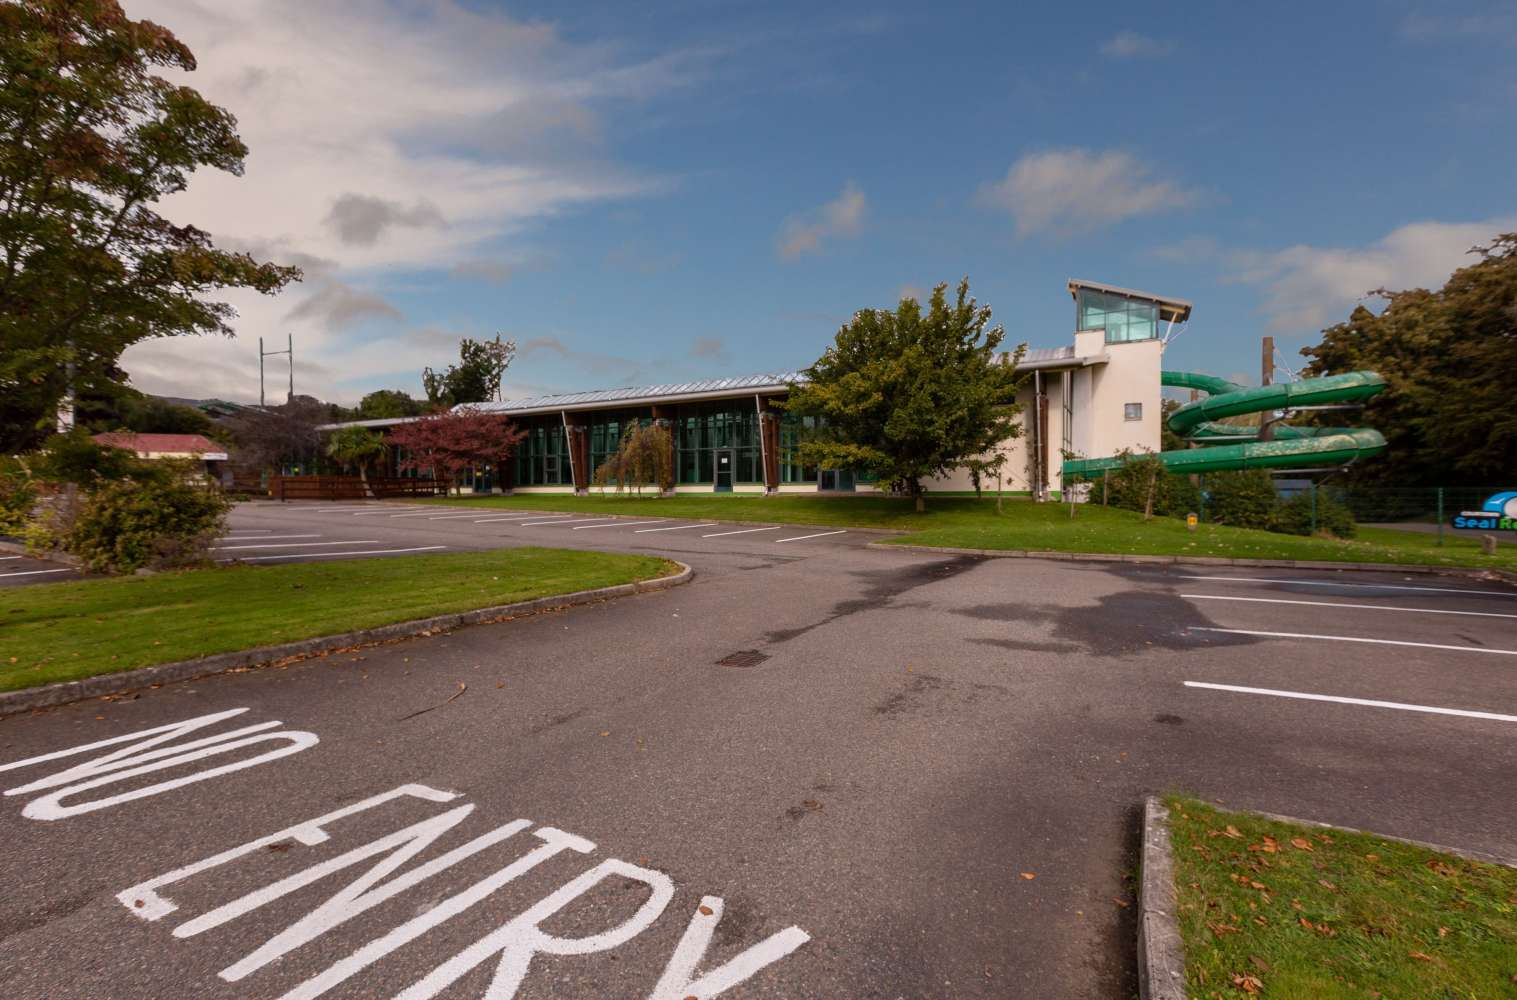 Hotels & hospitality Co wexford, Y25 PD92 - Courtown Adventure & Leisure Centre Complex,